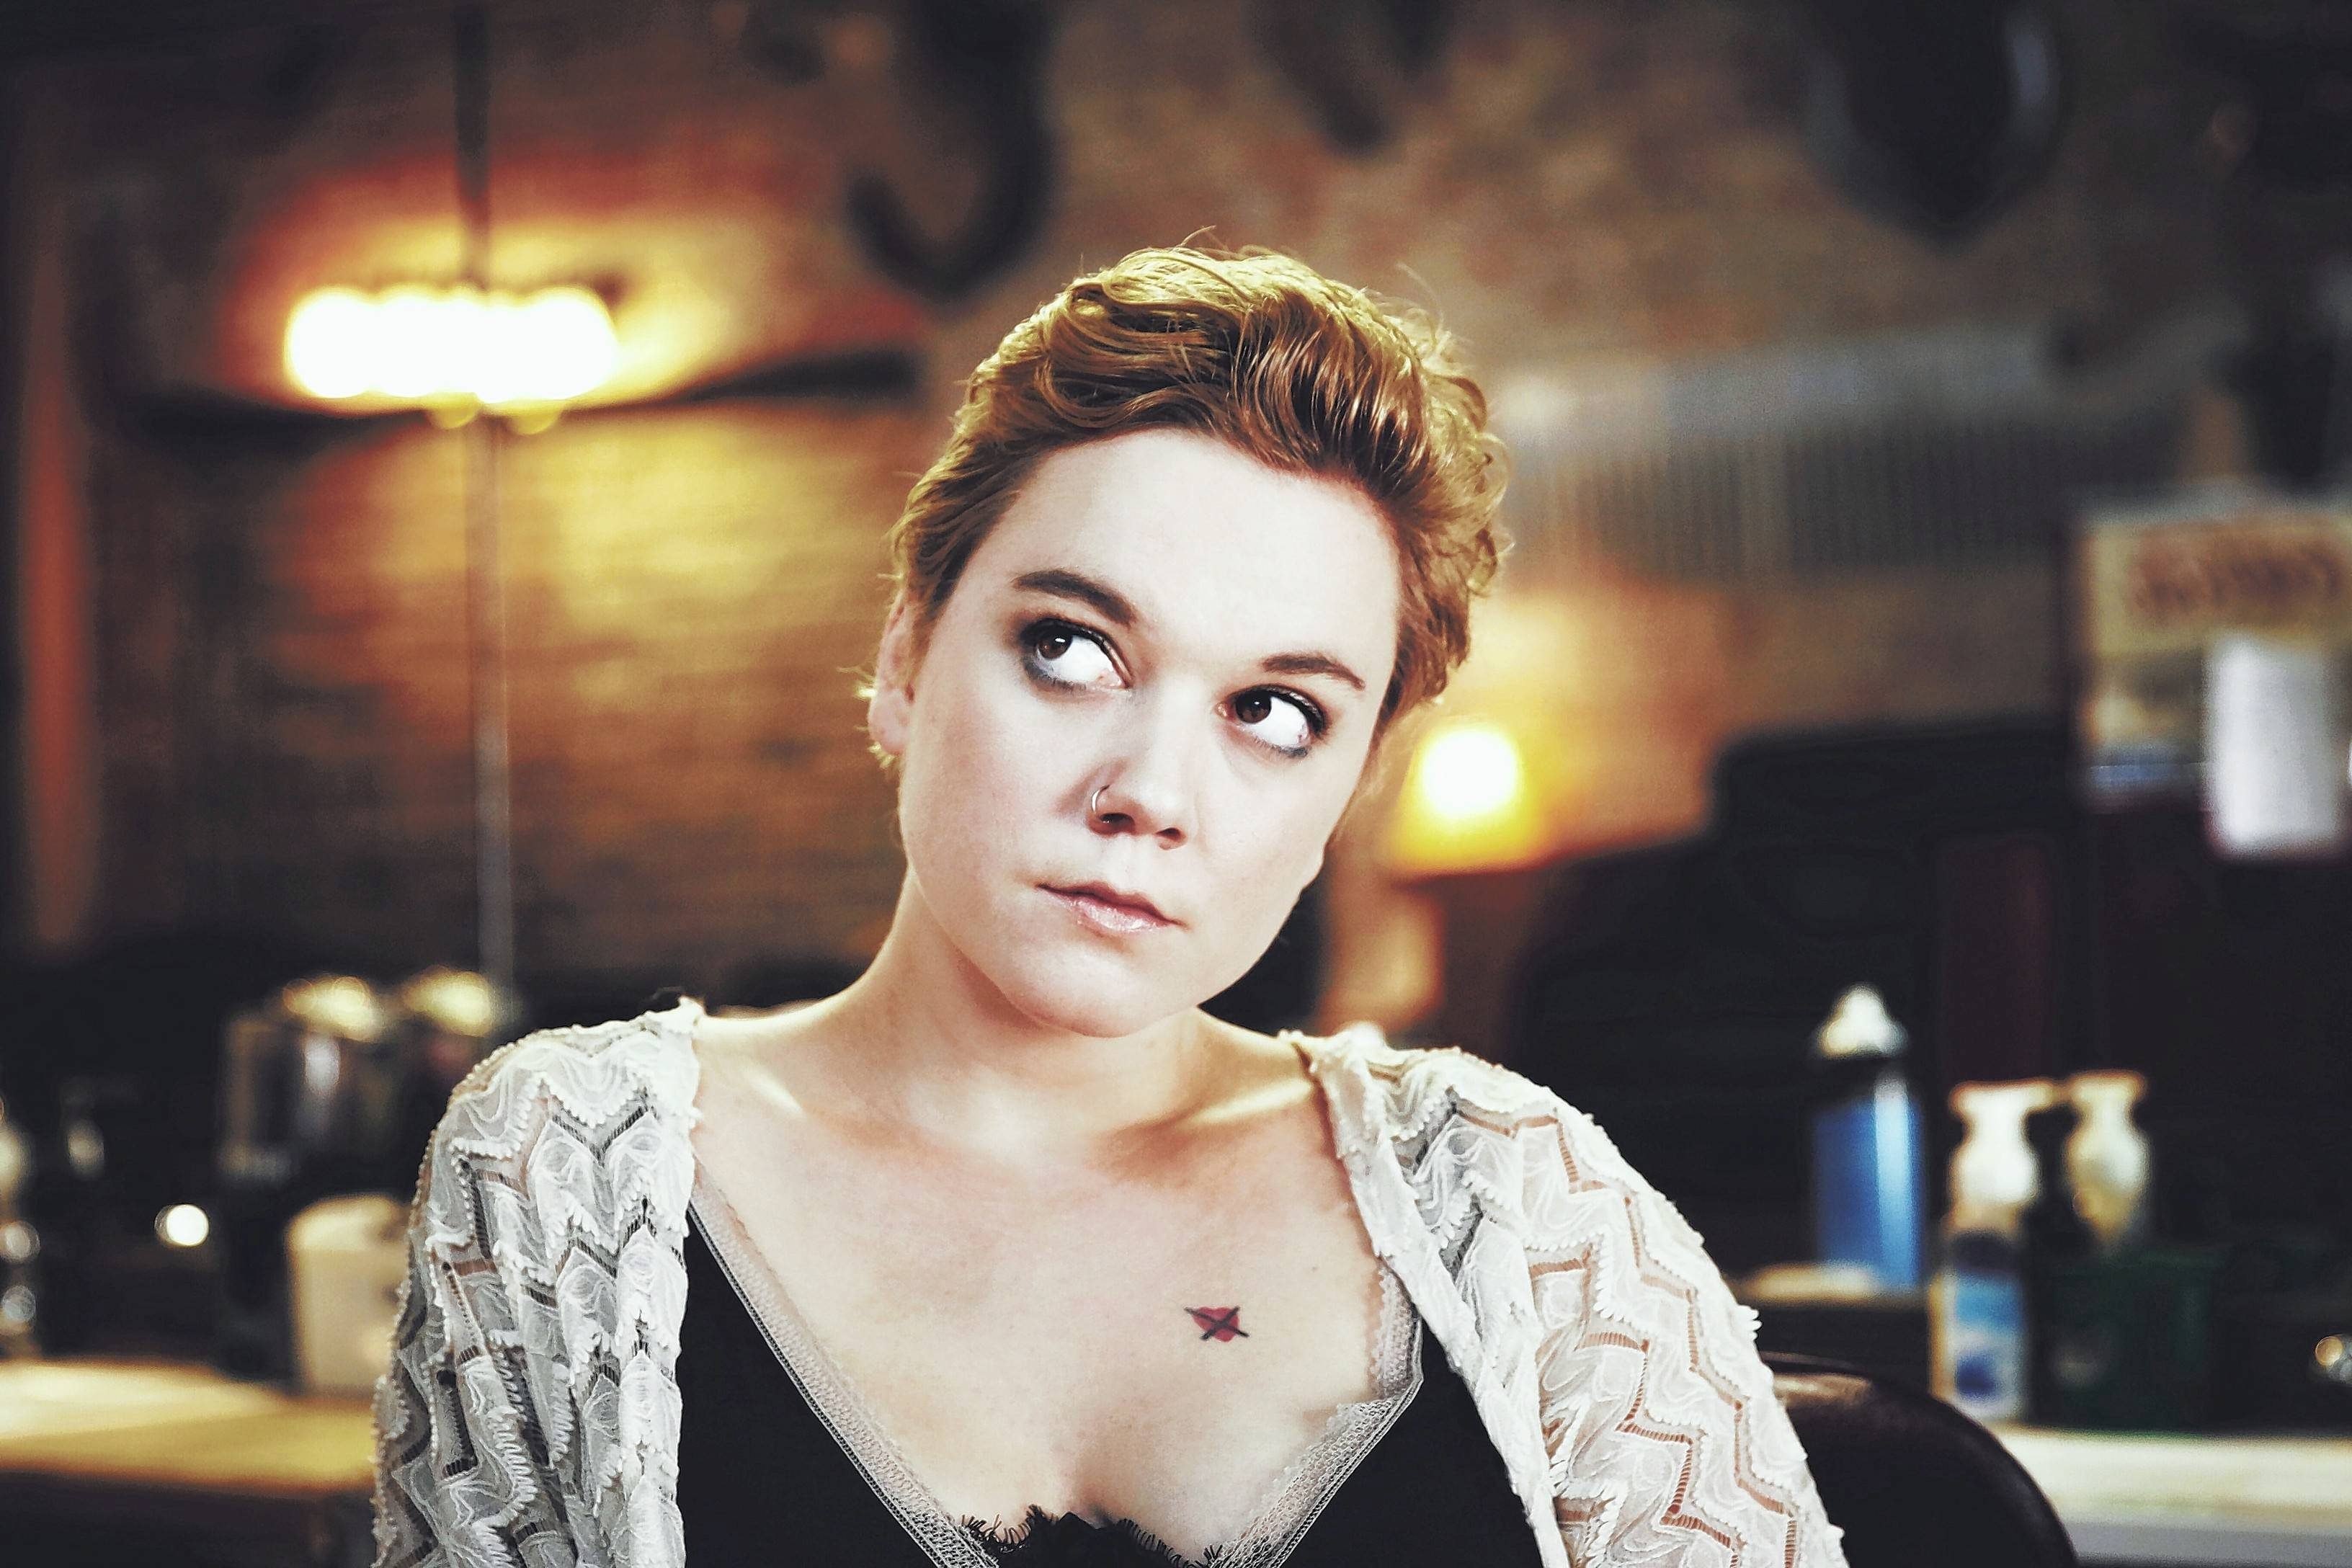 Lydia Loveless brings stripped-down versions of some favorite songs to The Hideout Wednesday and Thursday, Nov. 15-16.